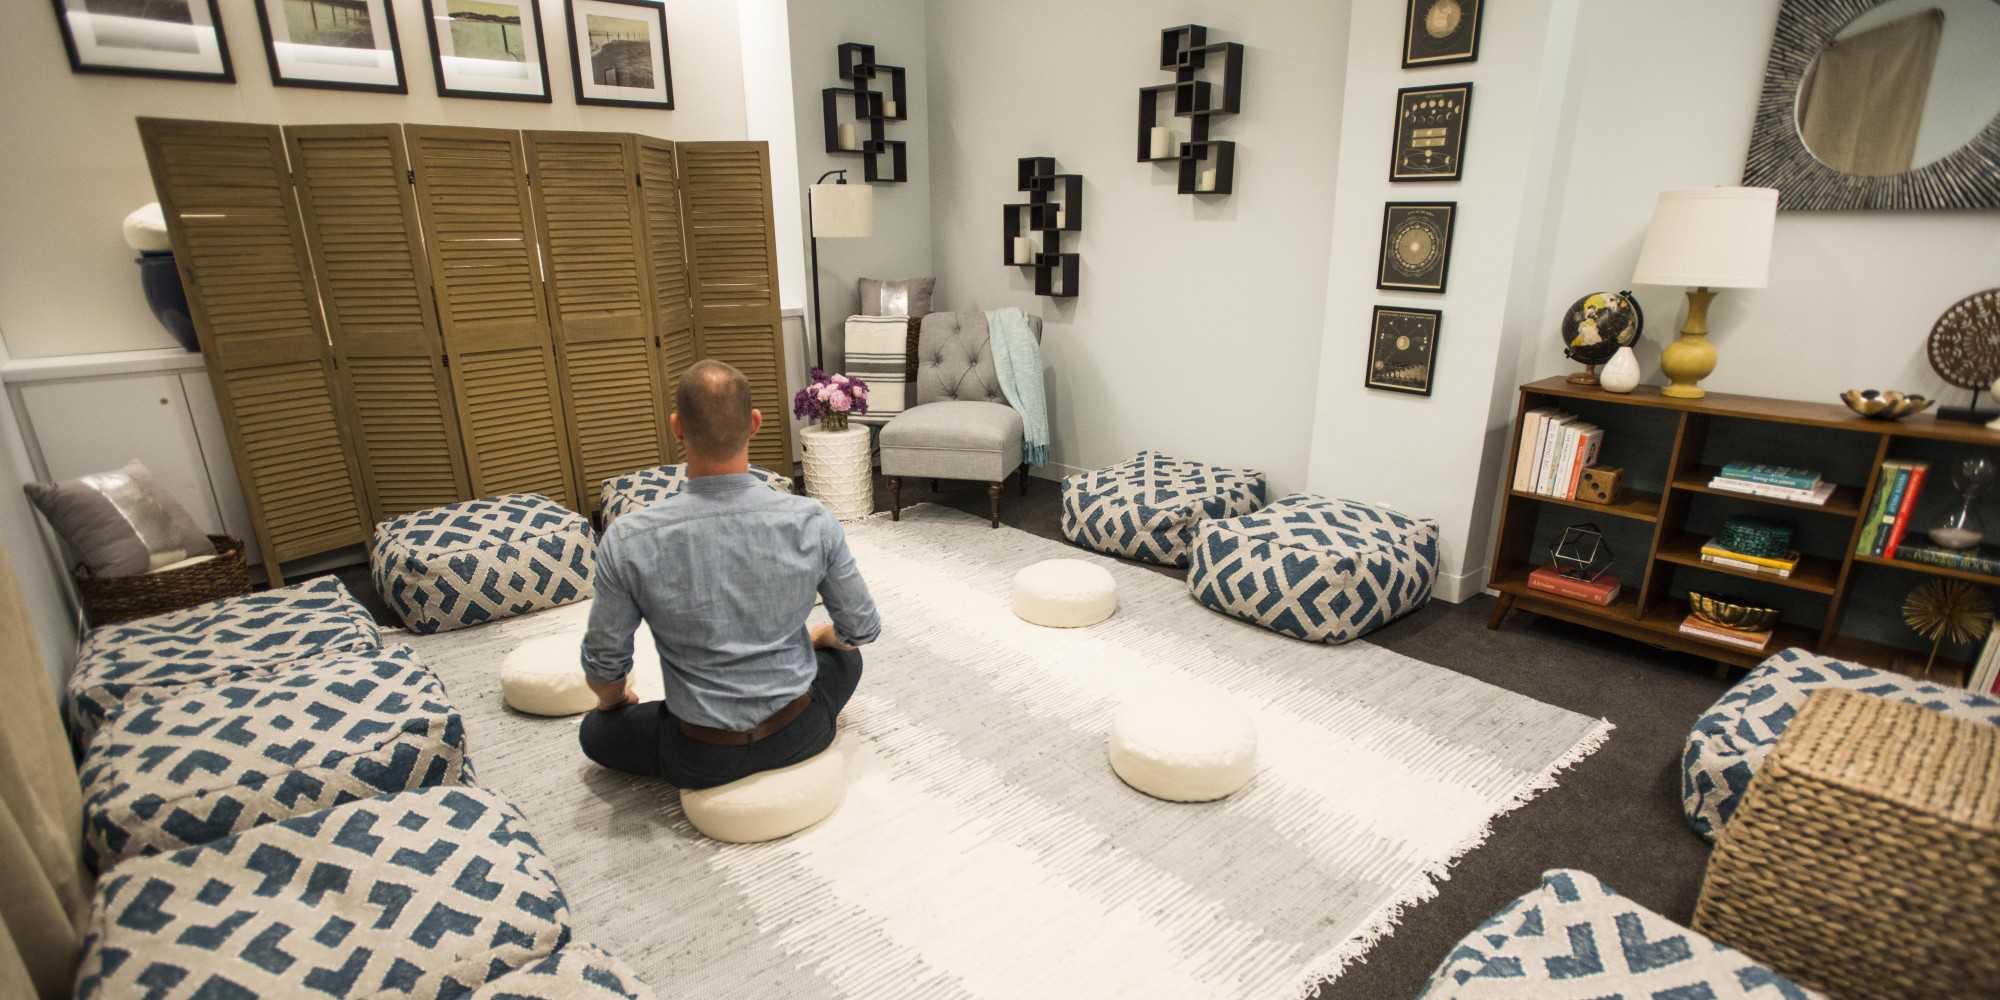 5 quick ways to make your home a more meditative space huffpost - Ways of creating more storage space in your home ...